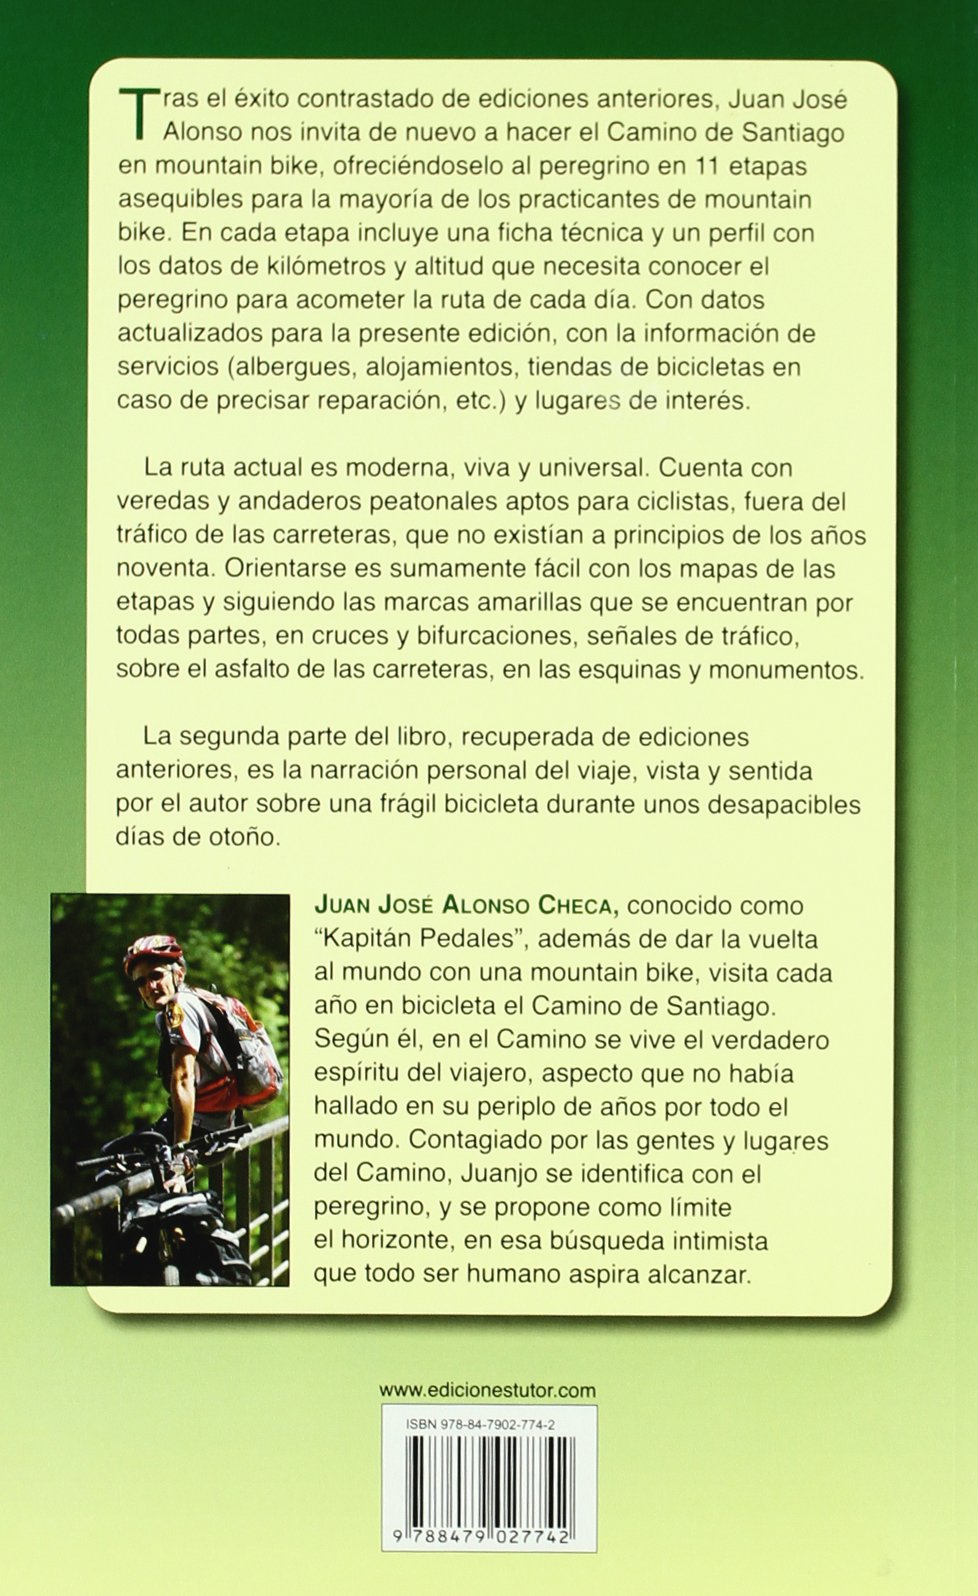 El camino de Santiago en mountain bike / St. James Way in Mountain Bike (Spanish Edition): Juanjo Alonso: 9788479027742: Amazon.com: Books